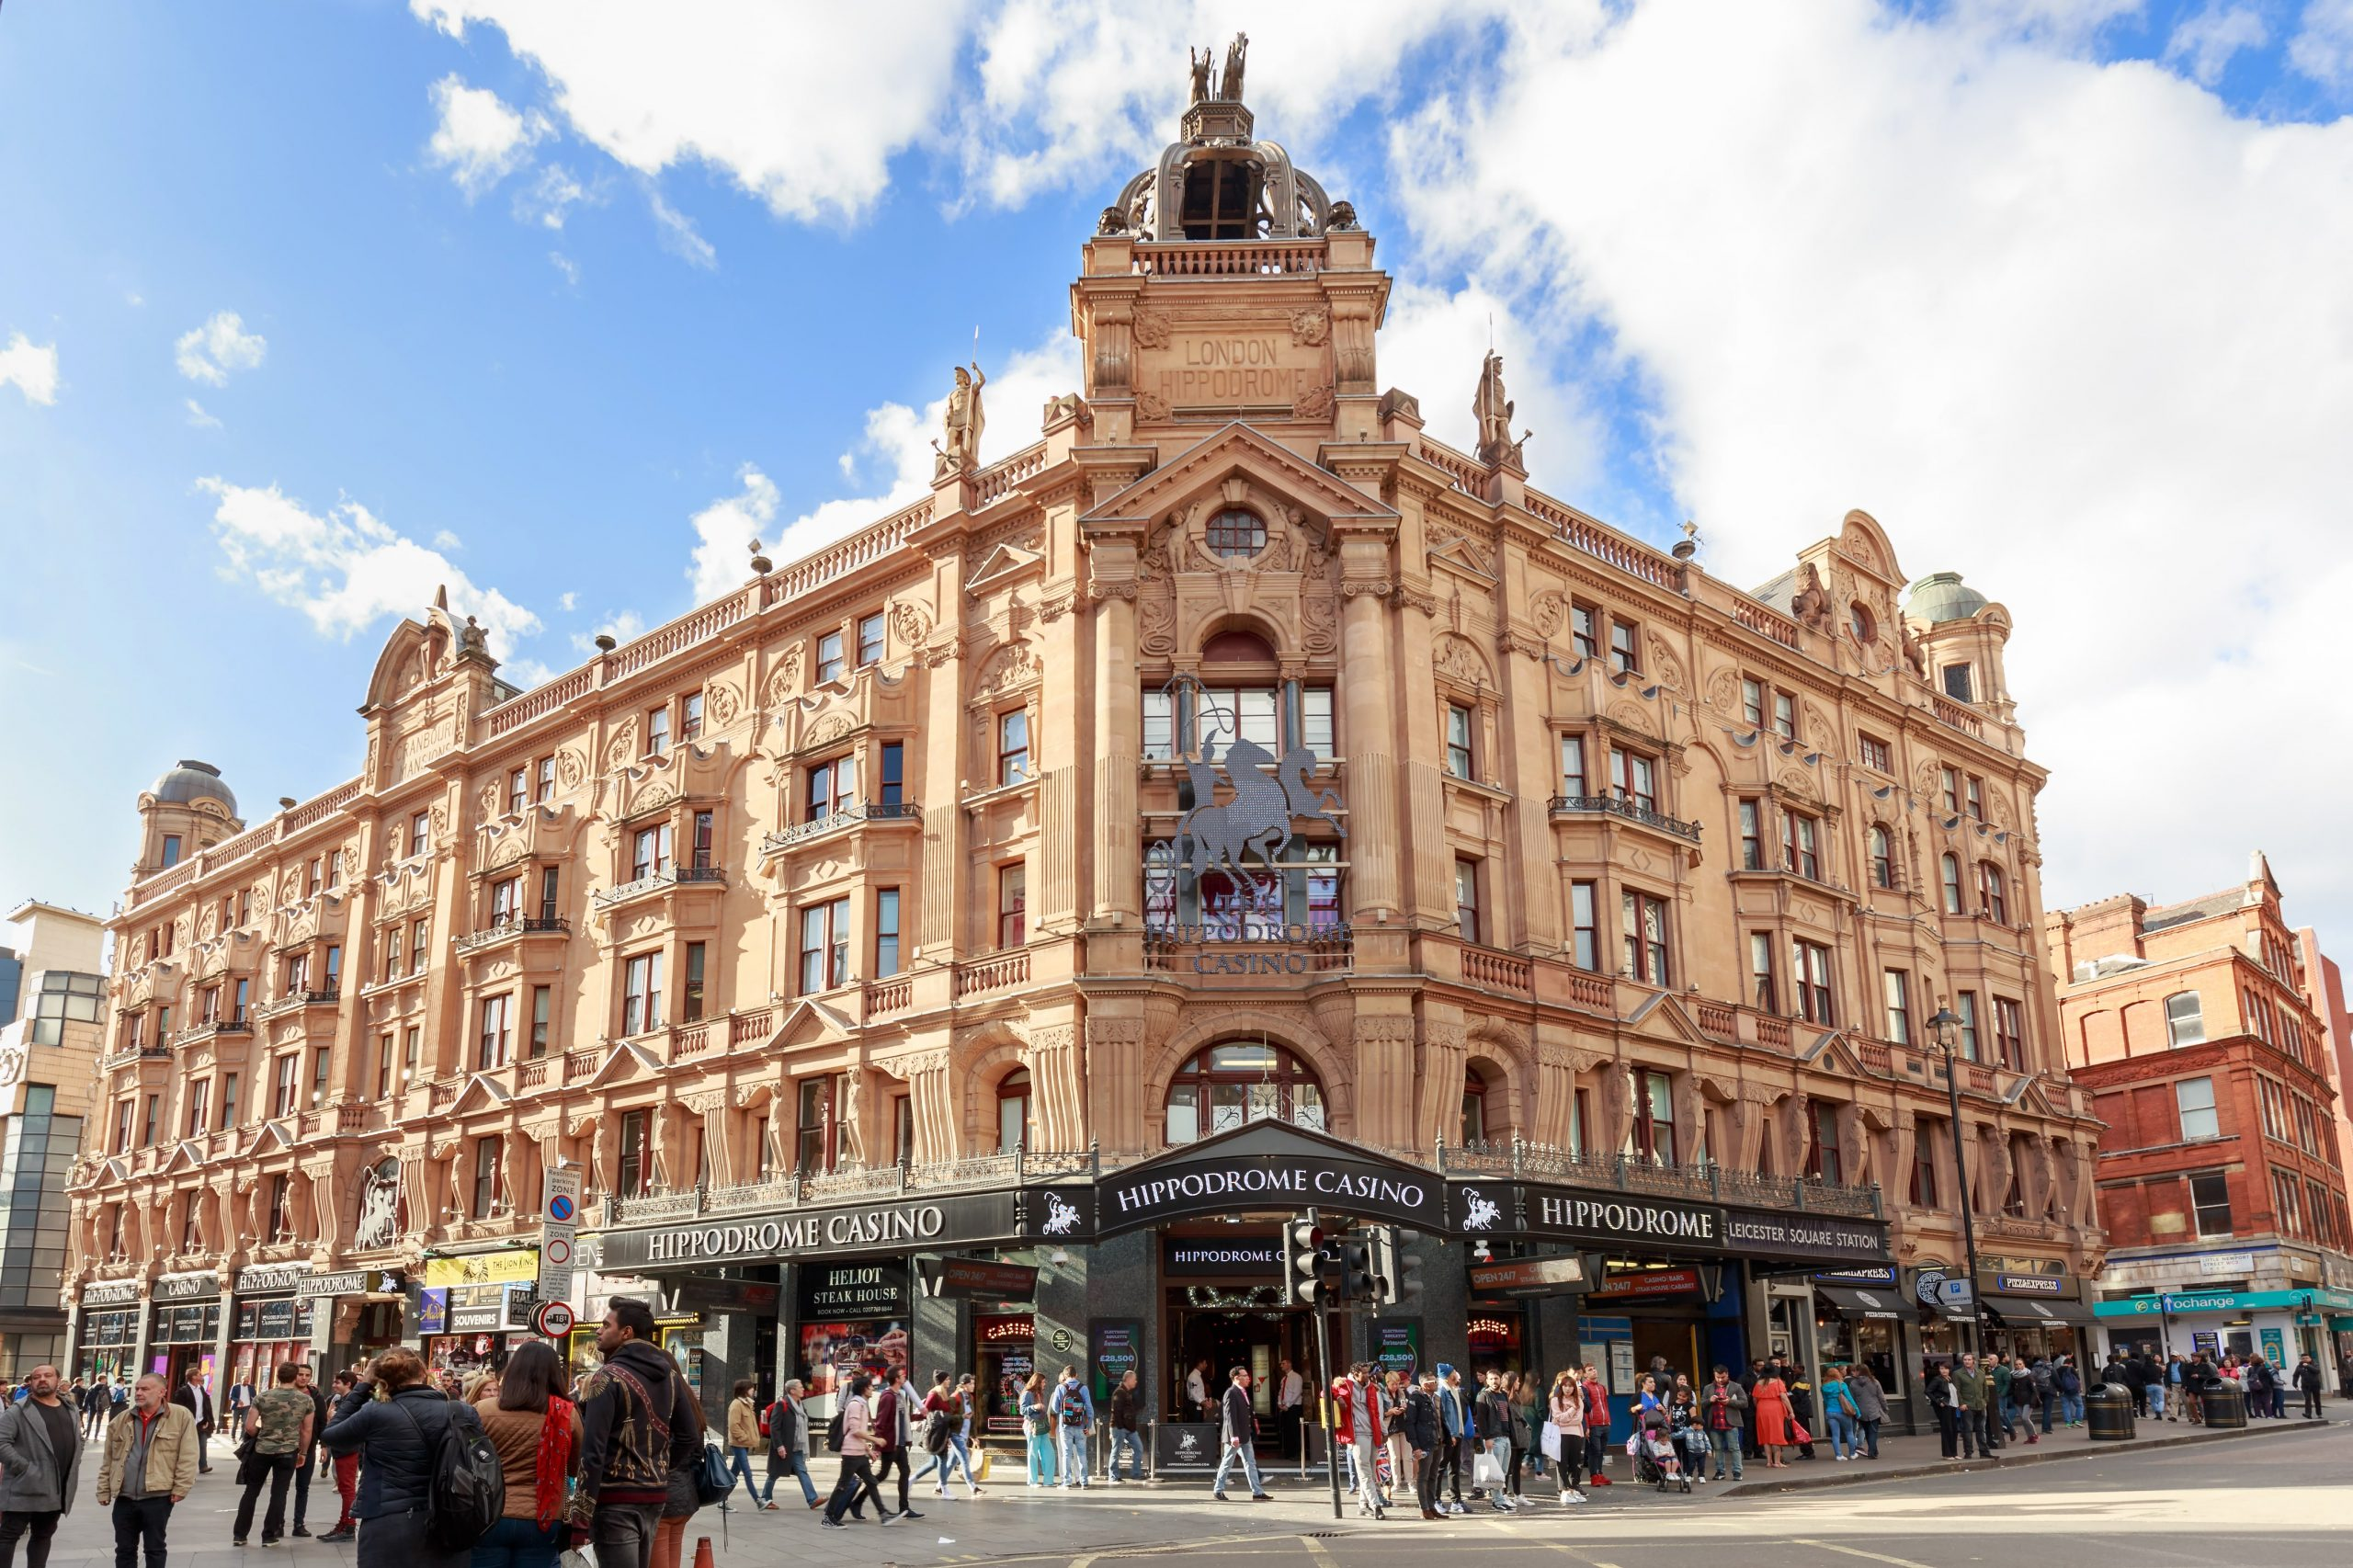 The Hippodrome Casino, best tourist places to visit in london